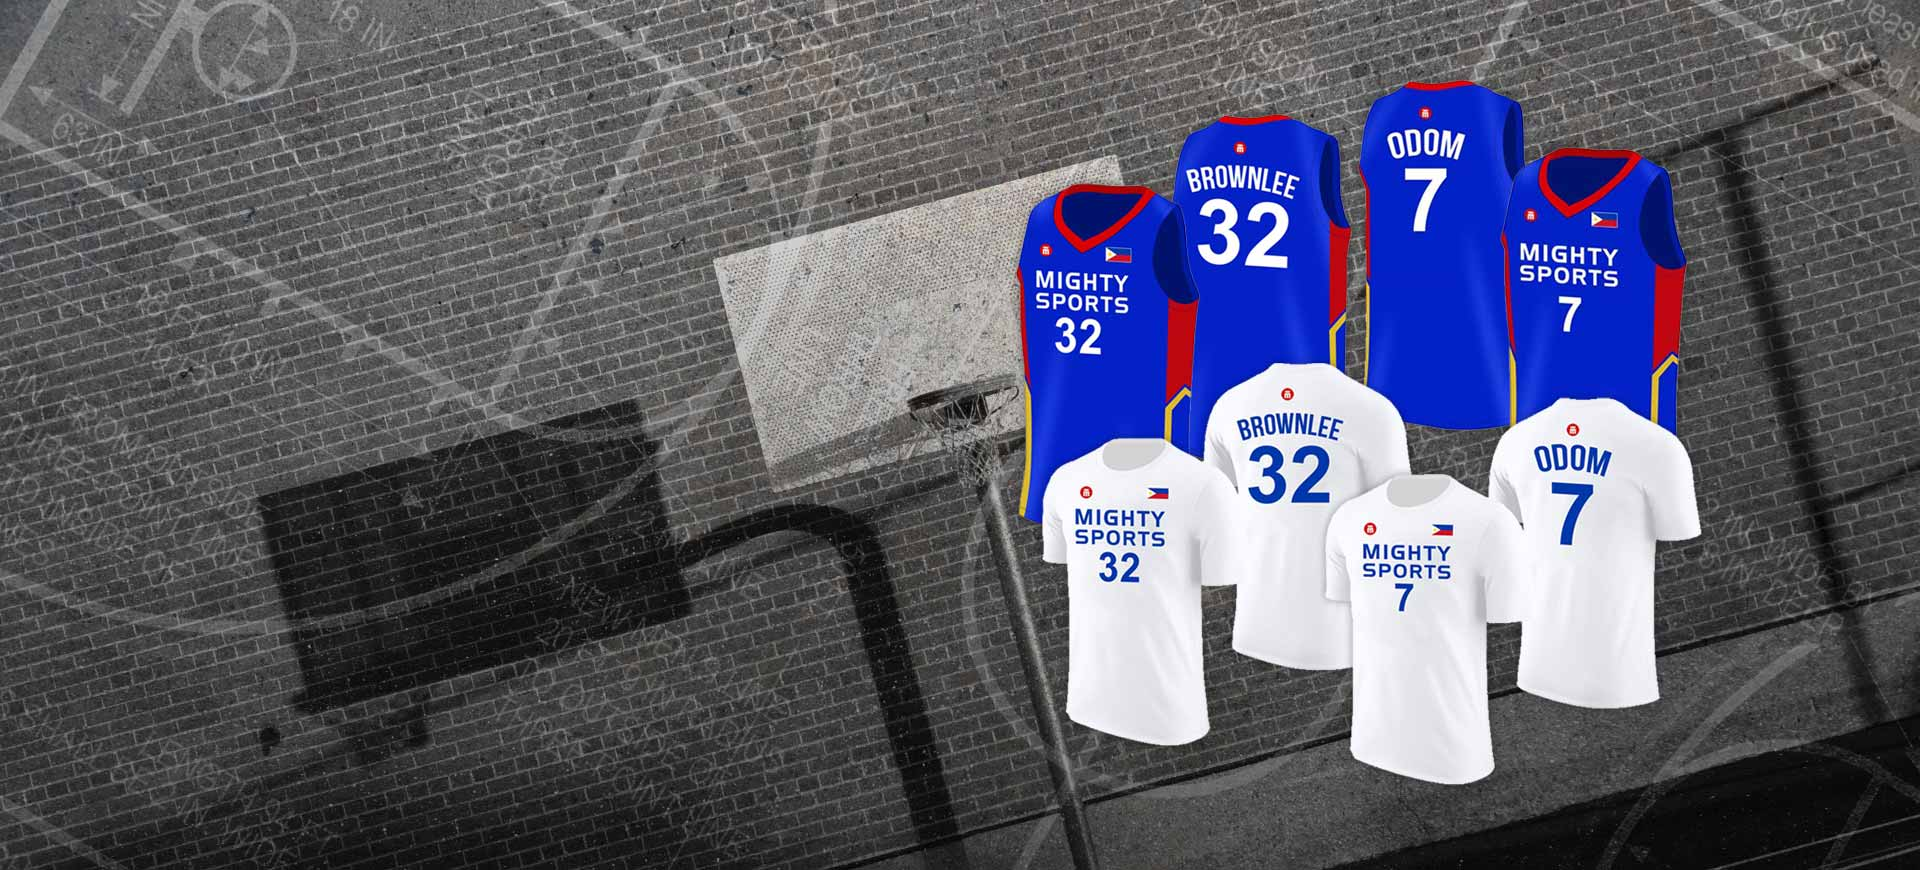 mighty sports dubai collection 2019